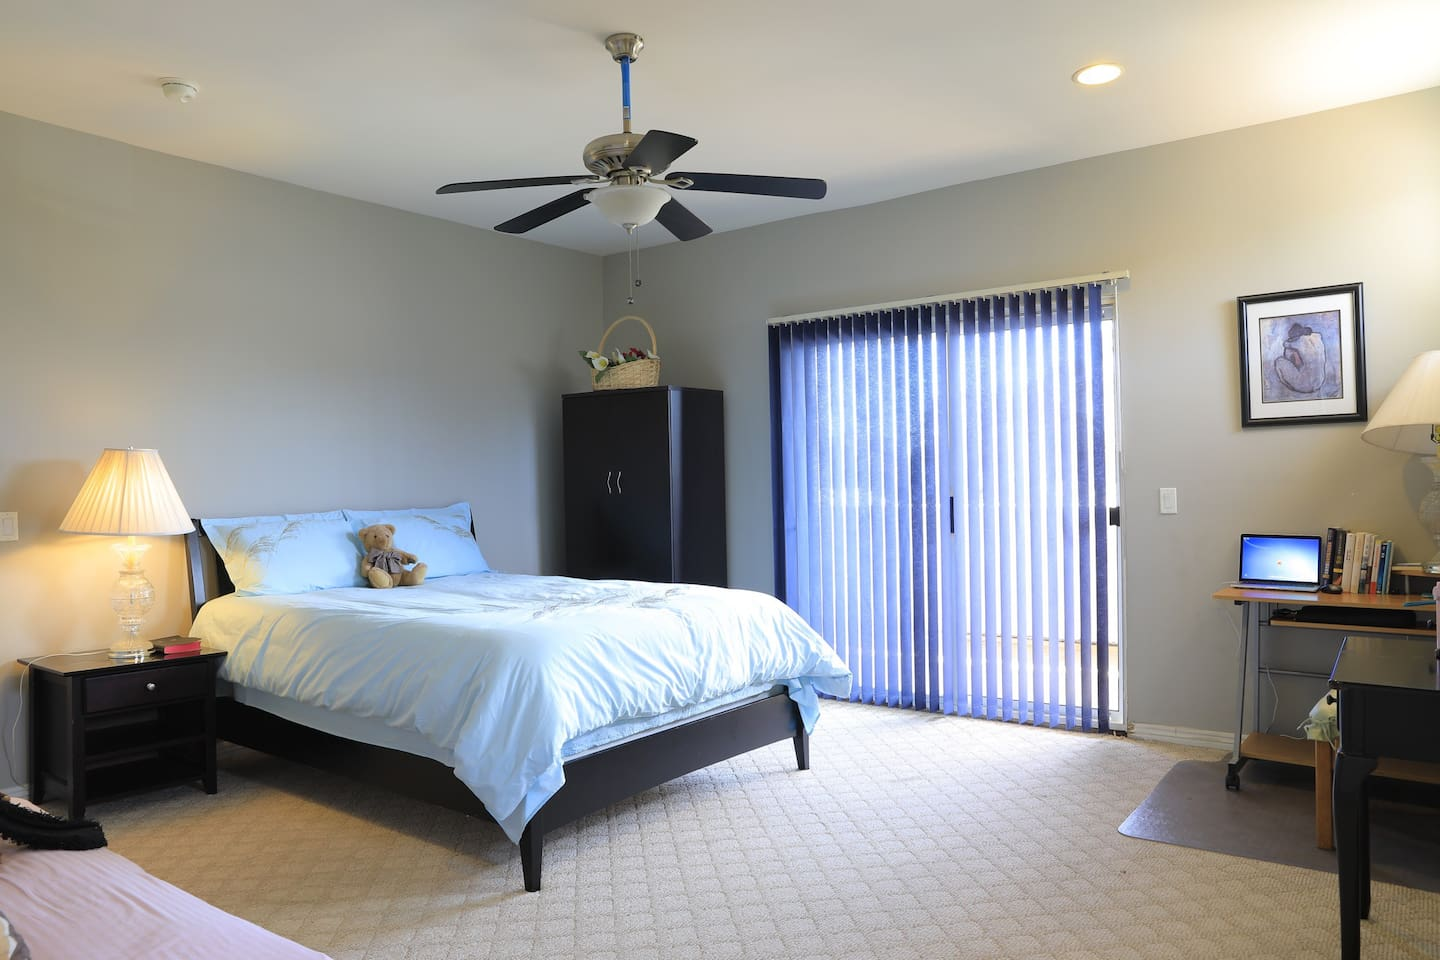 Layout of the room with a queen size bed. The sliding door opens to the covered patio